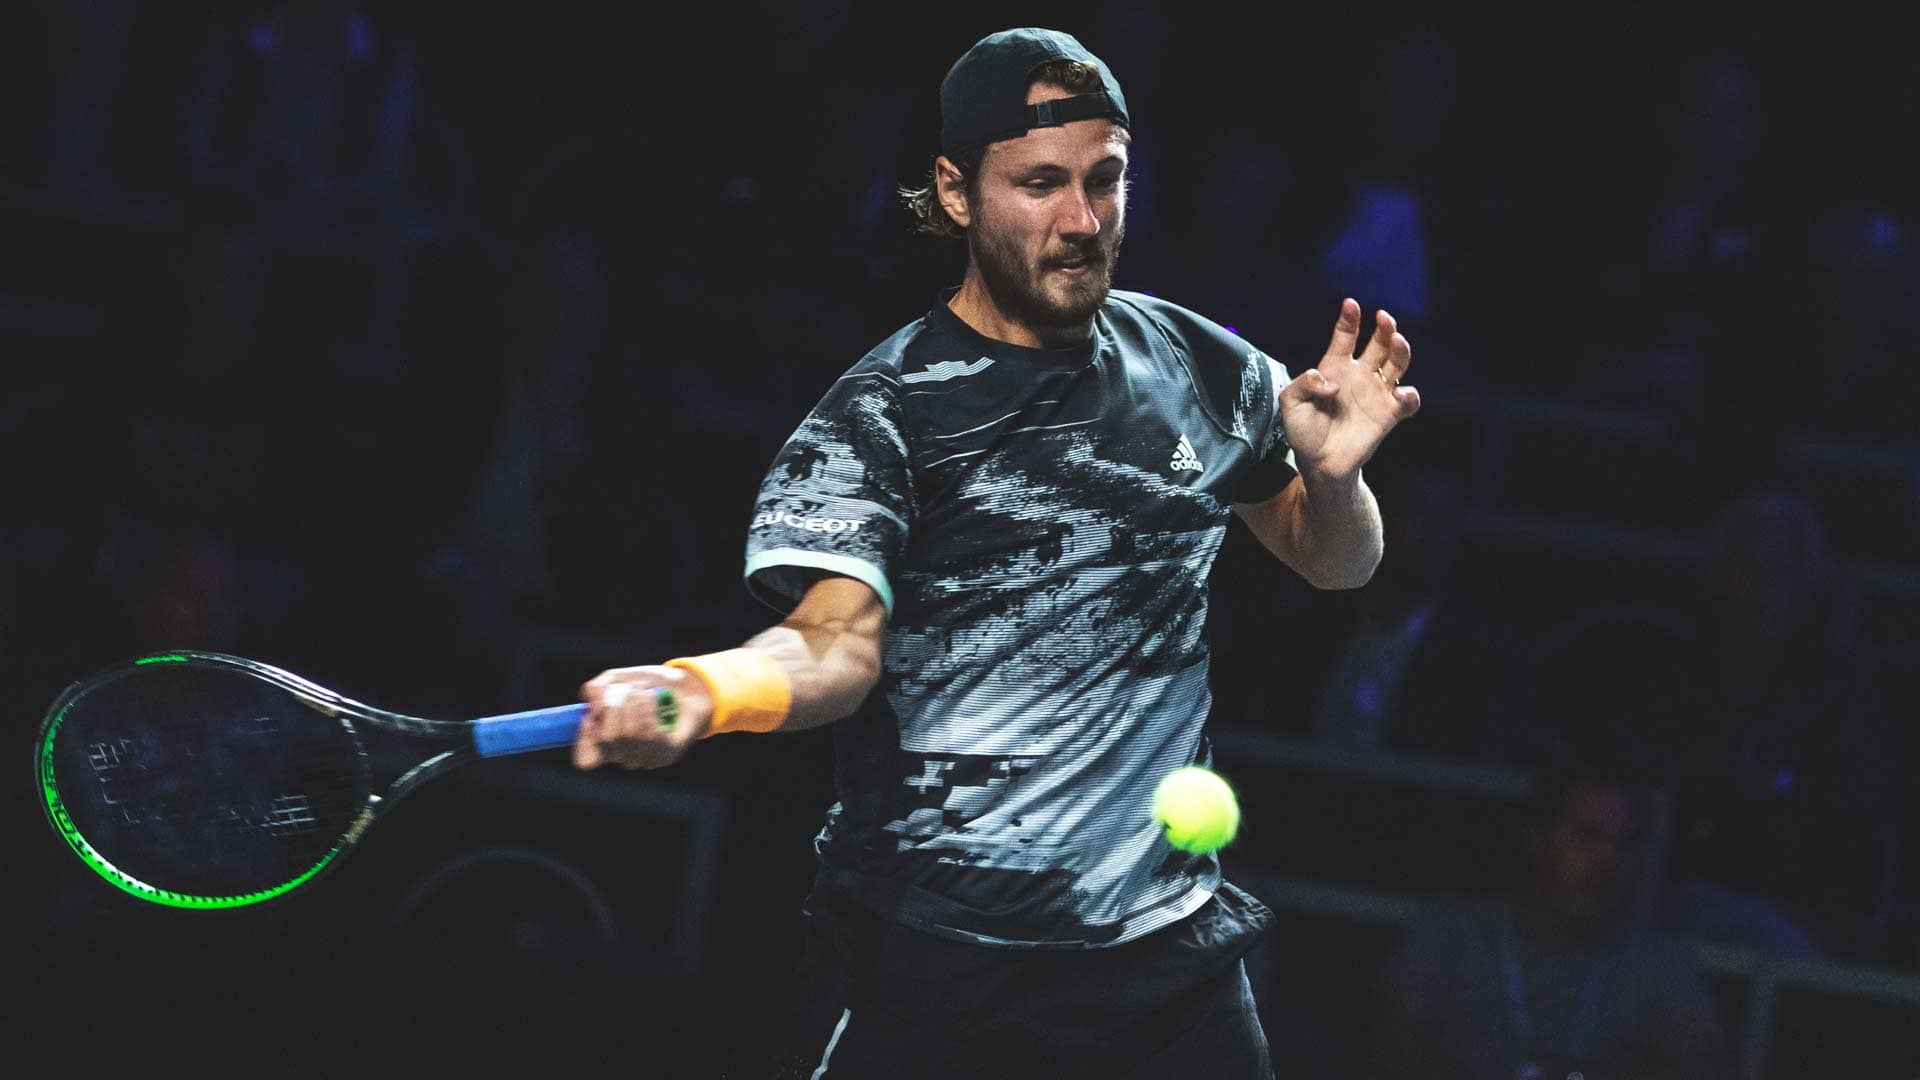 Lucas Pouille competes in the Metz 2019 quarter-finals